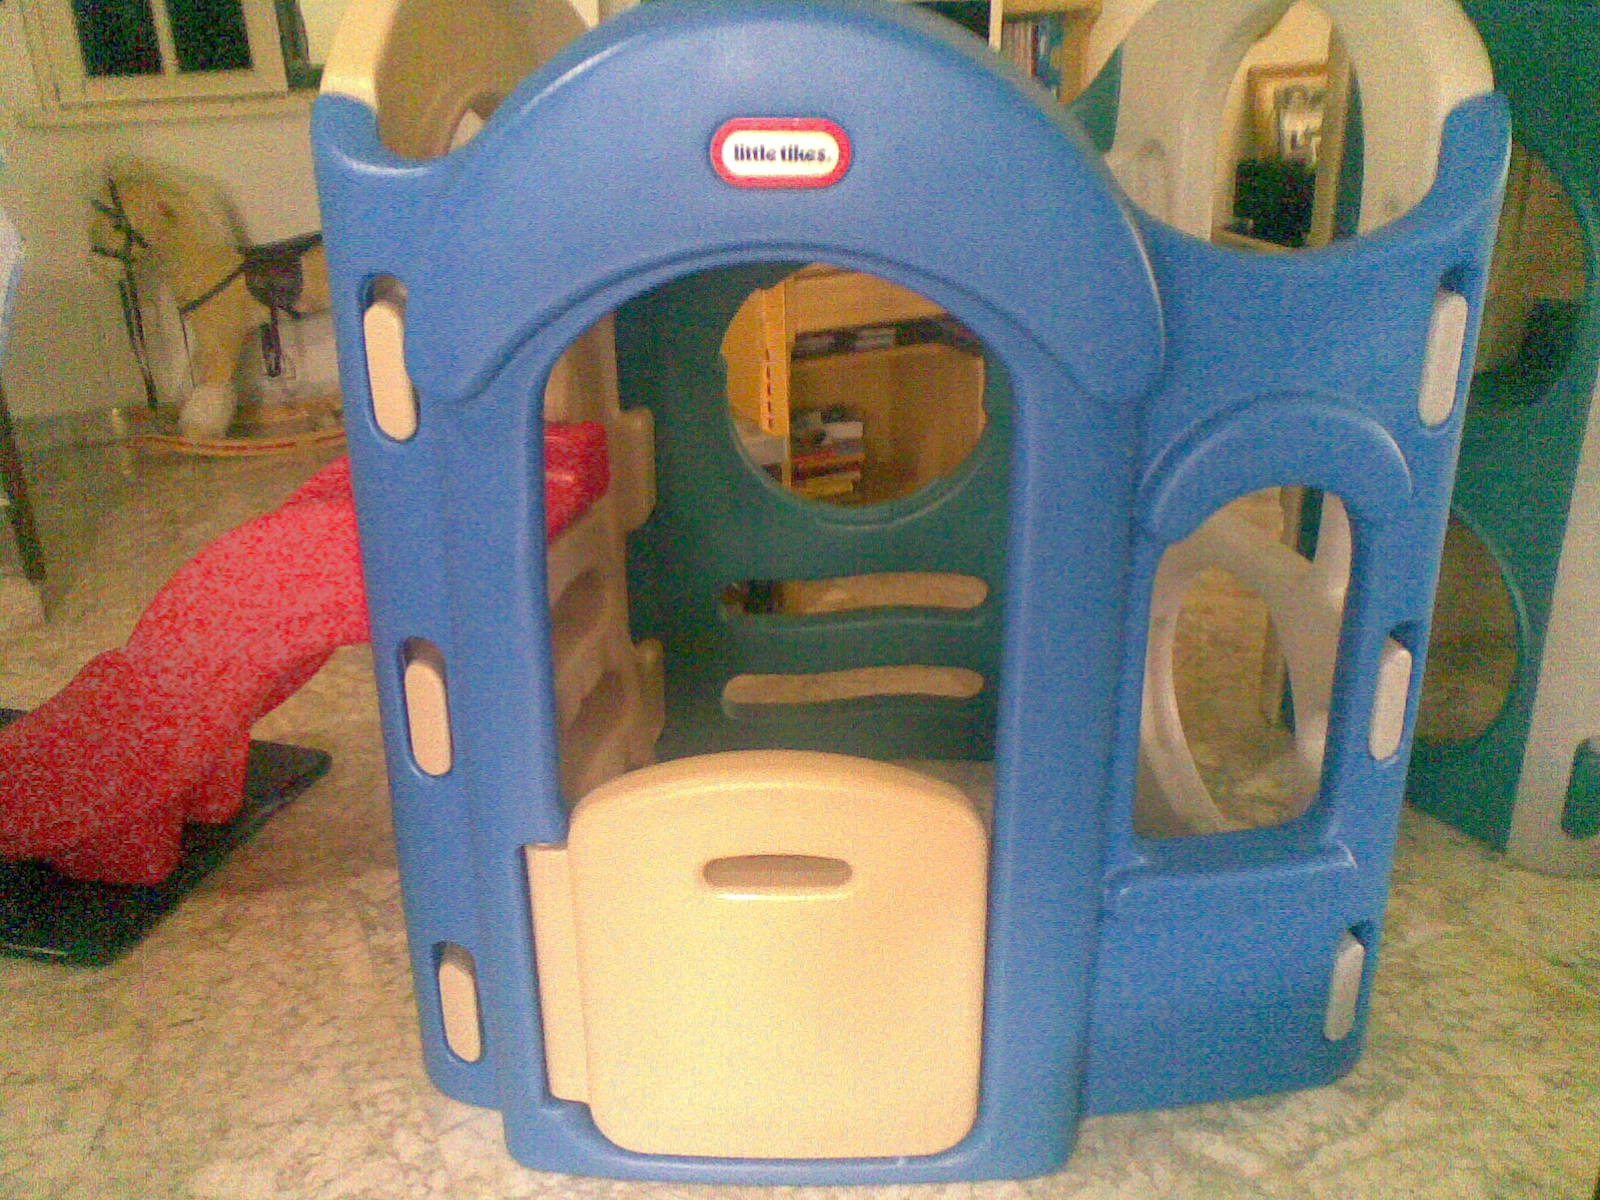 Awesome Little Tikes Playhouse With Red Slide For Chic Toy Ideas